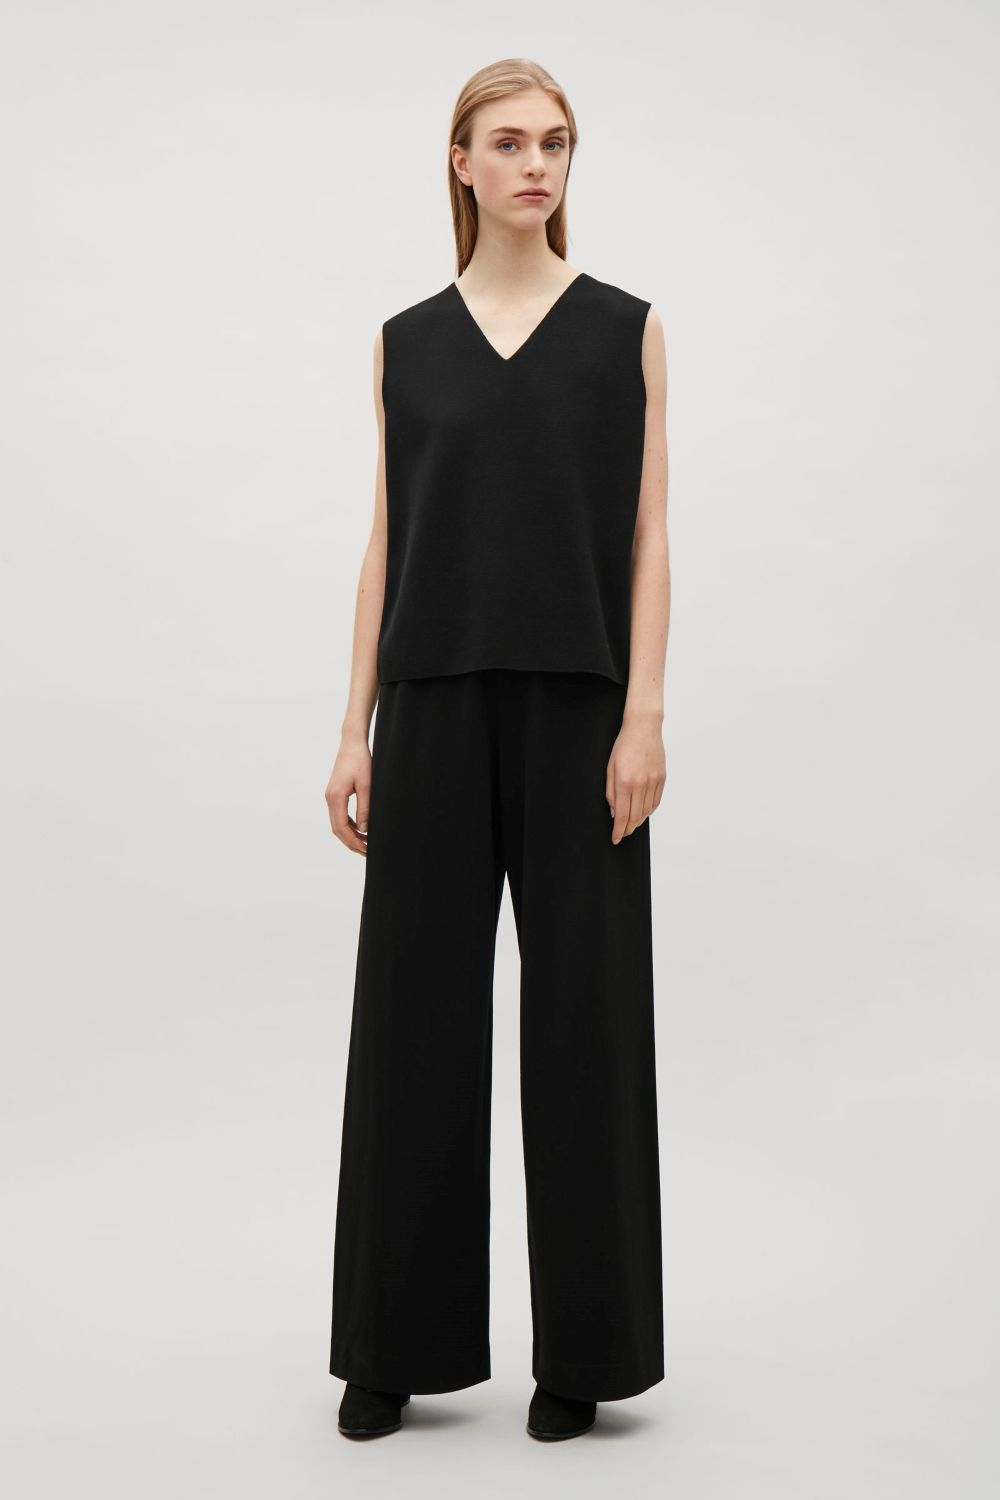 Made with extra-long legs that are designed to gather at the bottom, these trousers have a smooth, stretchy quality. A clean silhouette with minimal detailing, they are fitted to sit on the hips with a simple, elastic waistband.